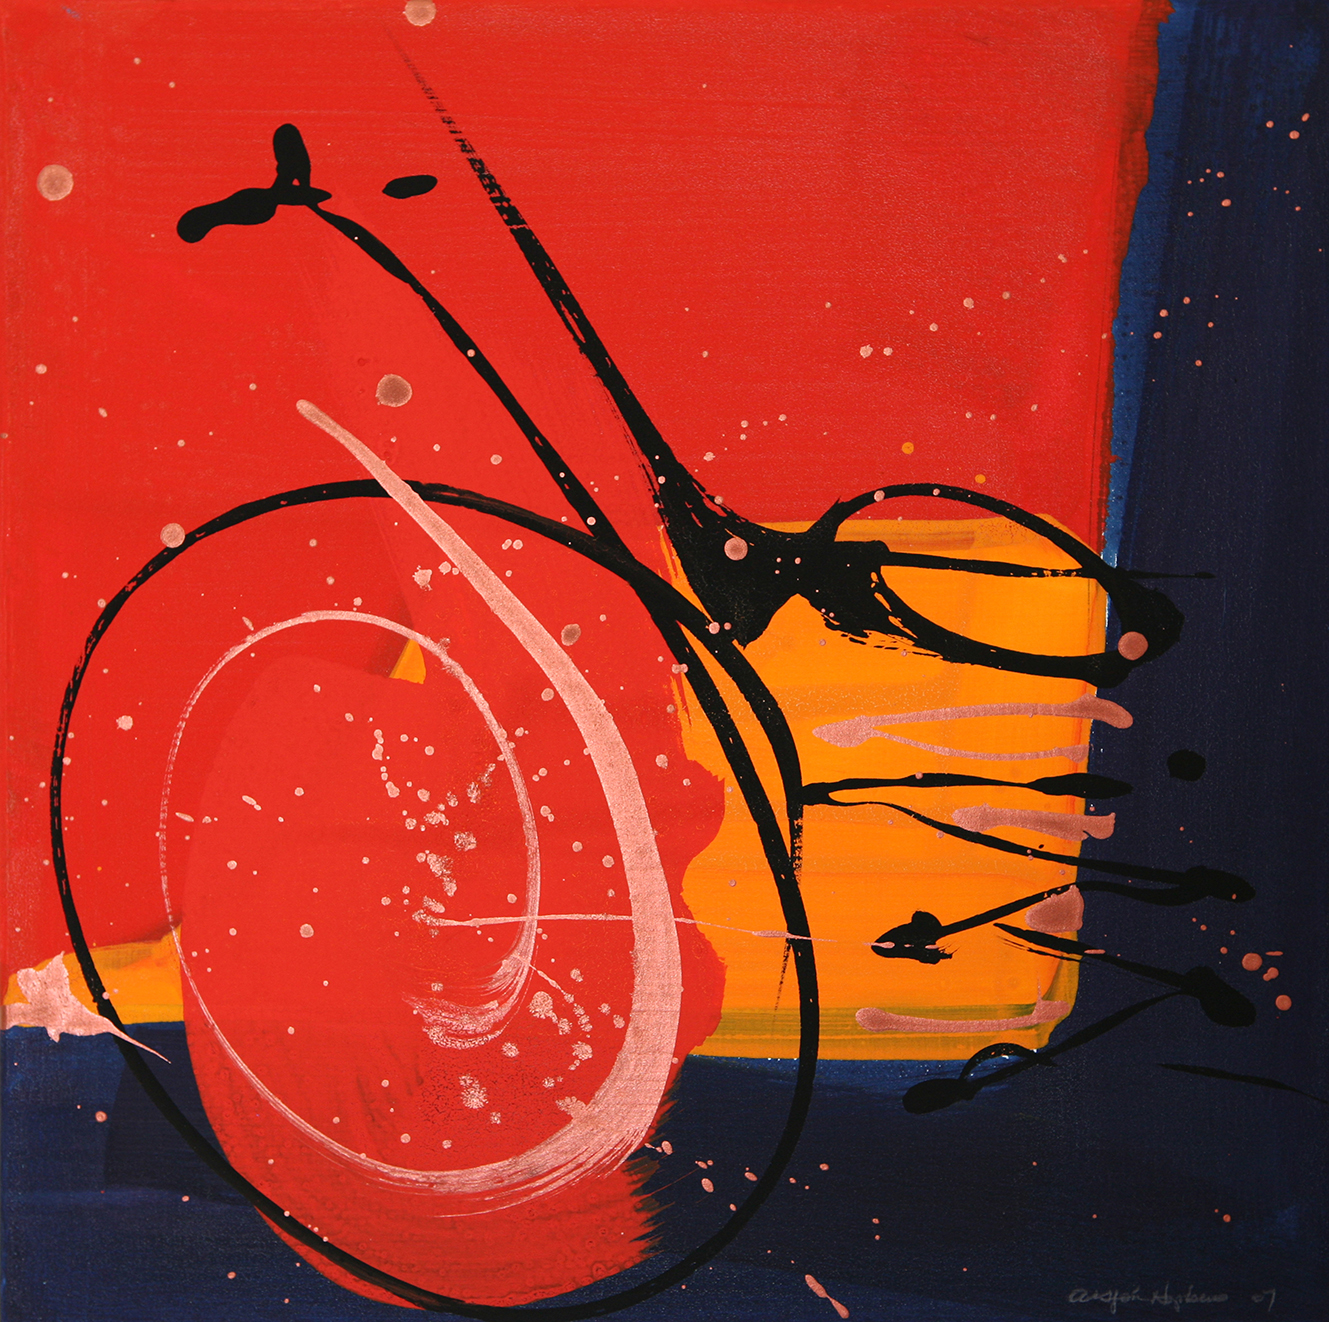 """Framed Gouache painting on canvas, 12x12"""", Reds, Orange, Navy and gold with calligraphic brush work."""